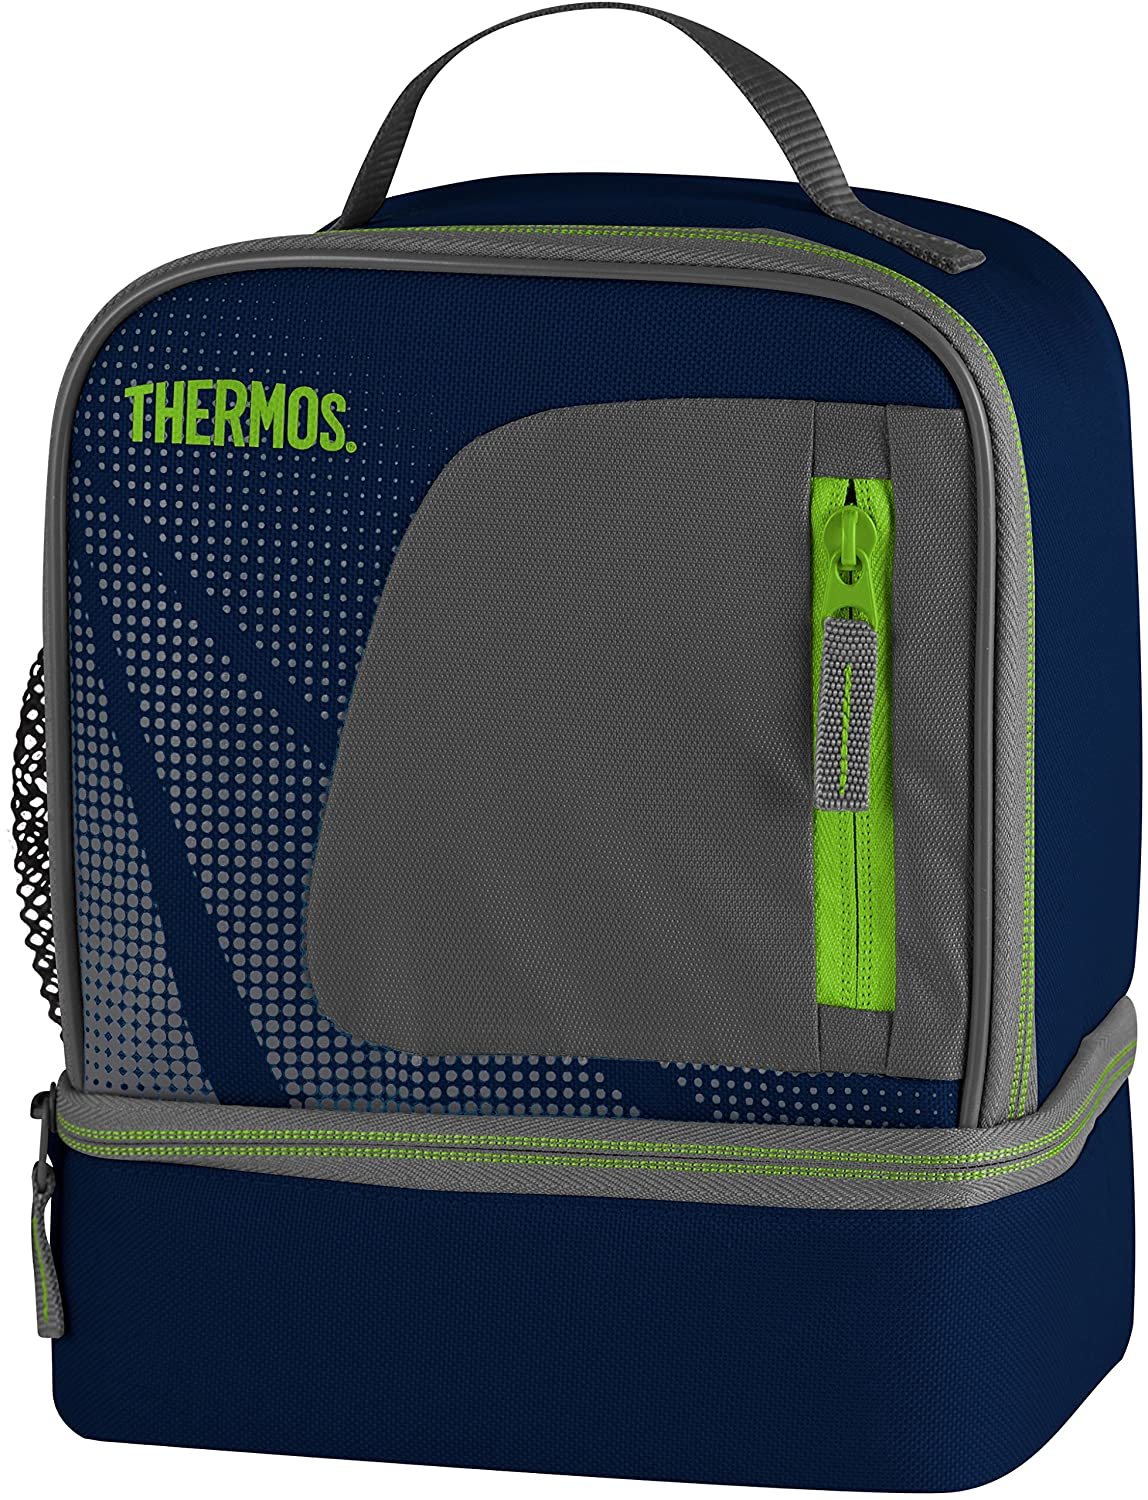 thermos radiance dual compartment lunch box kit bag blue navy school walking new. Black Bedroom Furniture Sets. Home Design Ideas